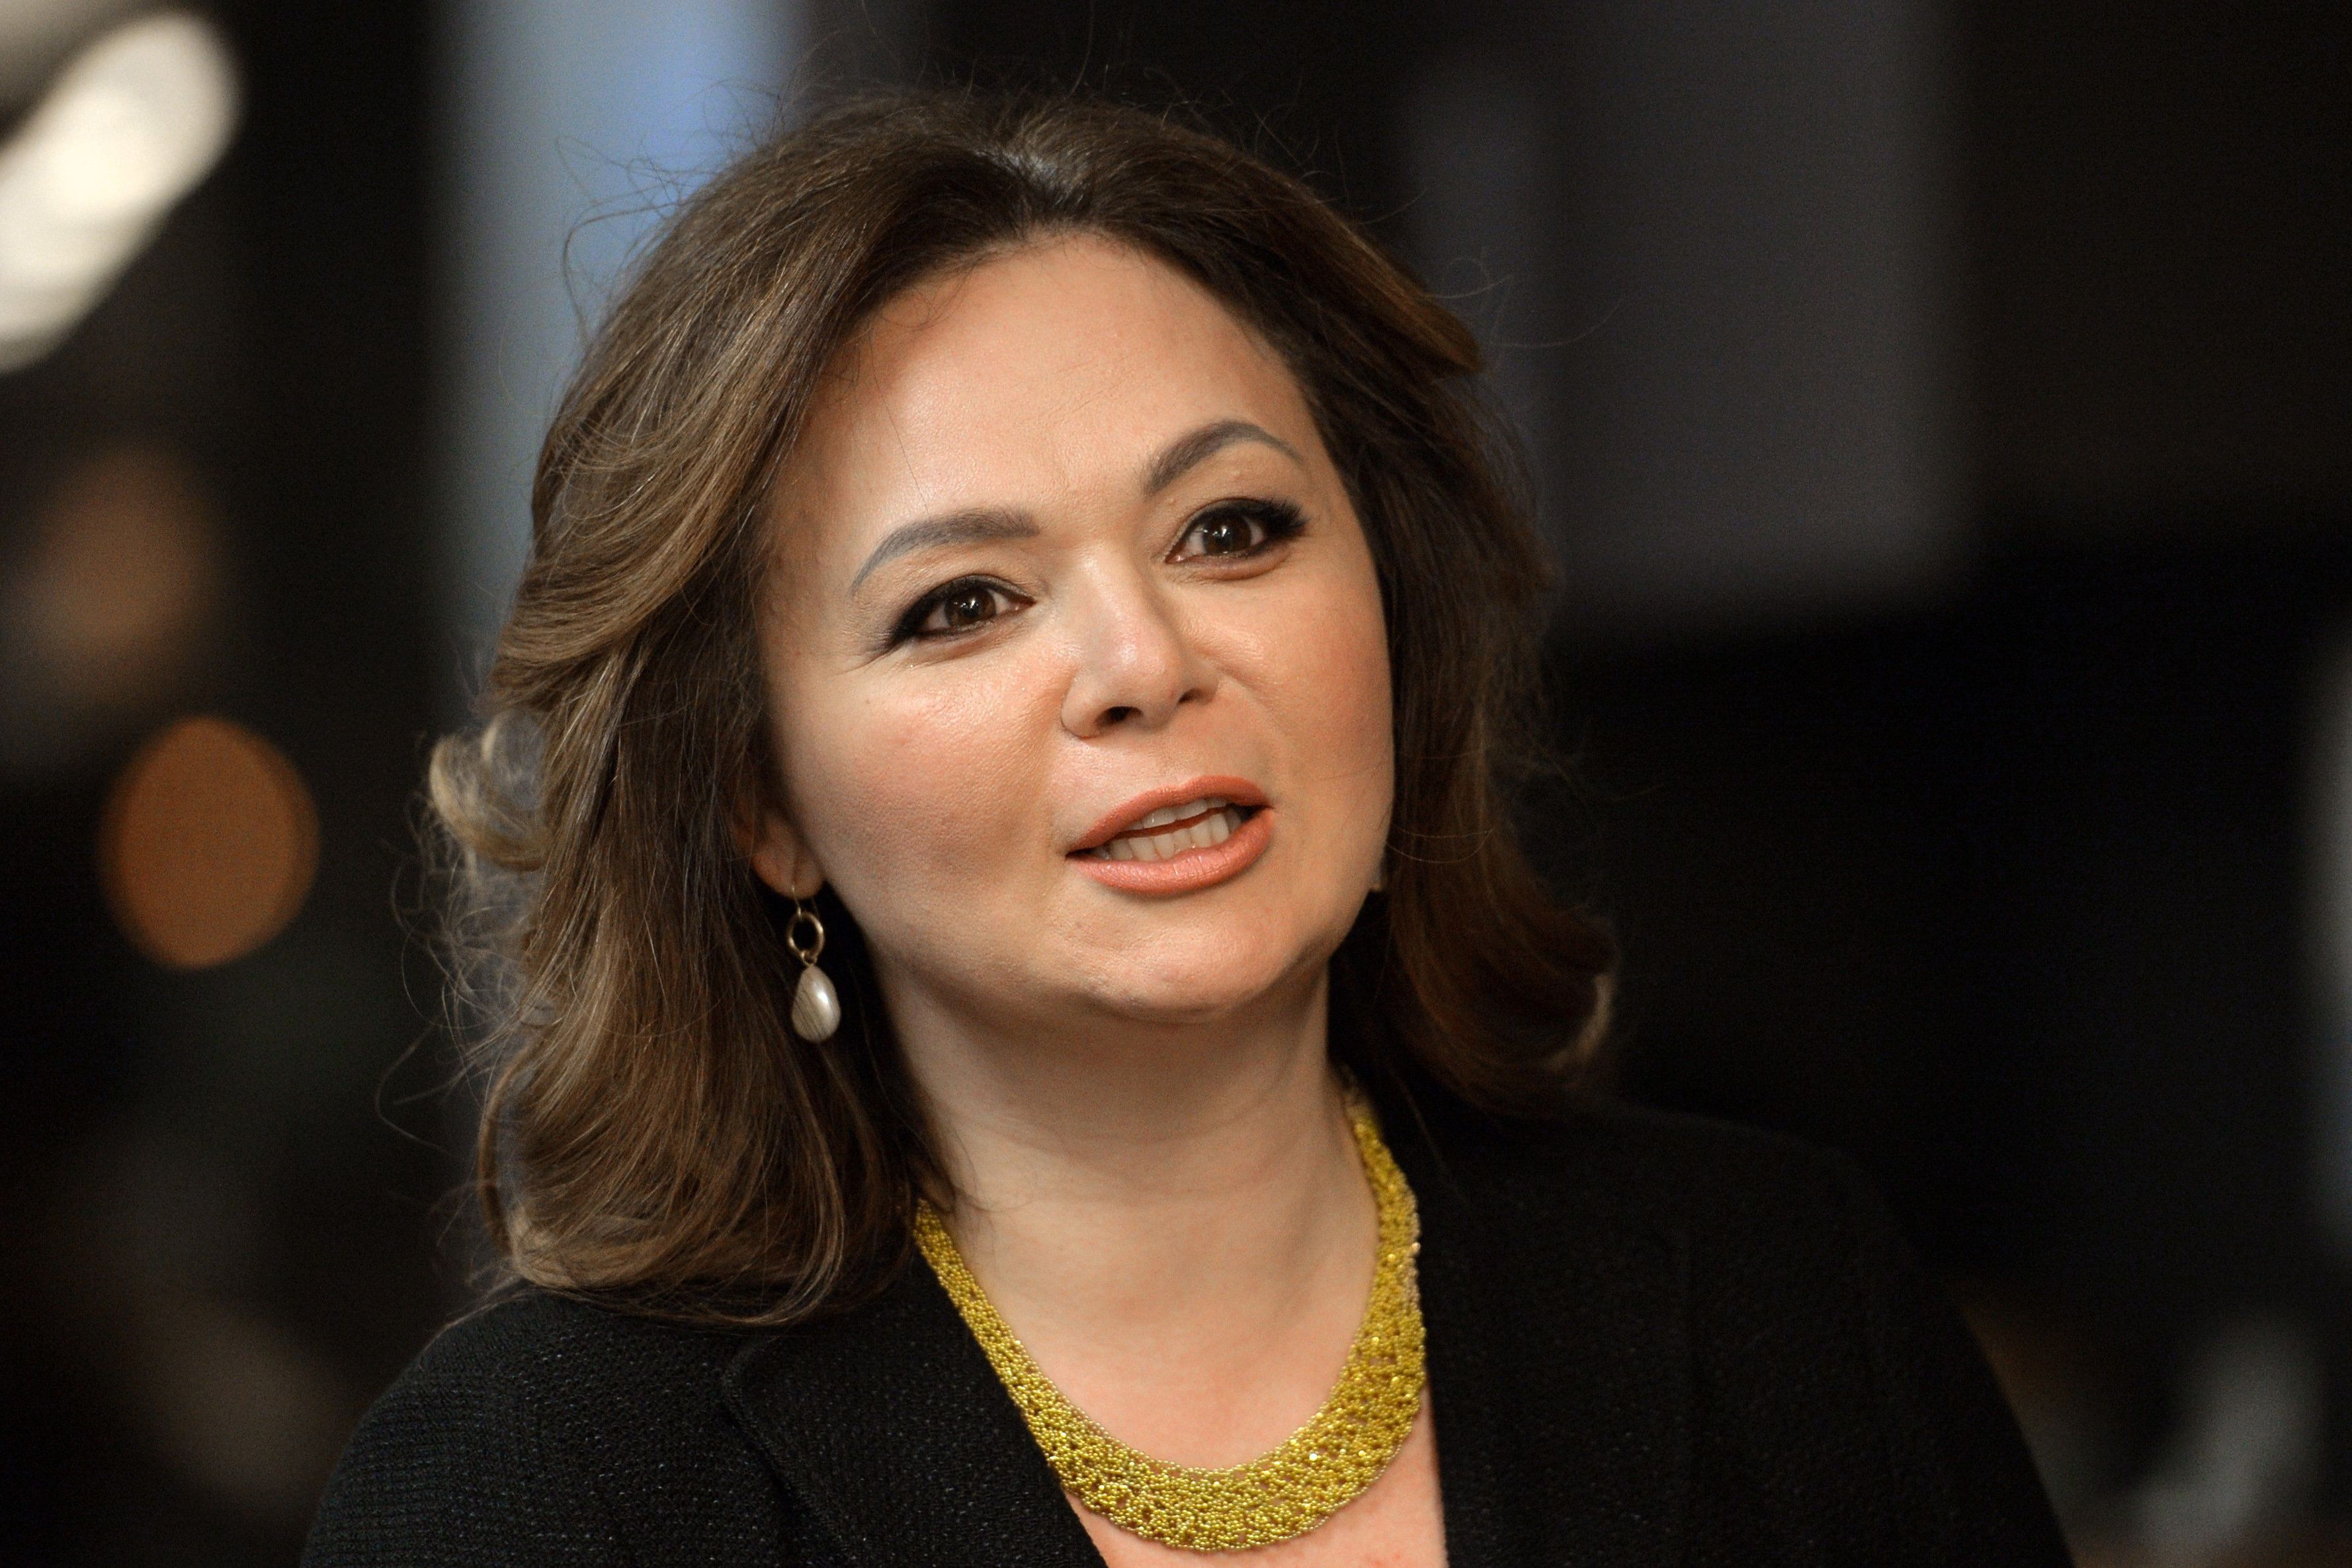 A picture taken on November 8, 2016 shows Russian lawyer Natalia Veselnitskaya speaking during an interview in Moscow. The bo